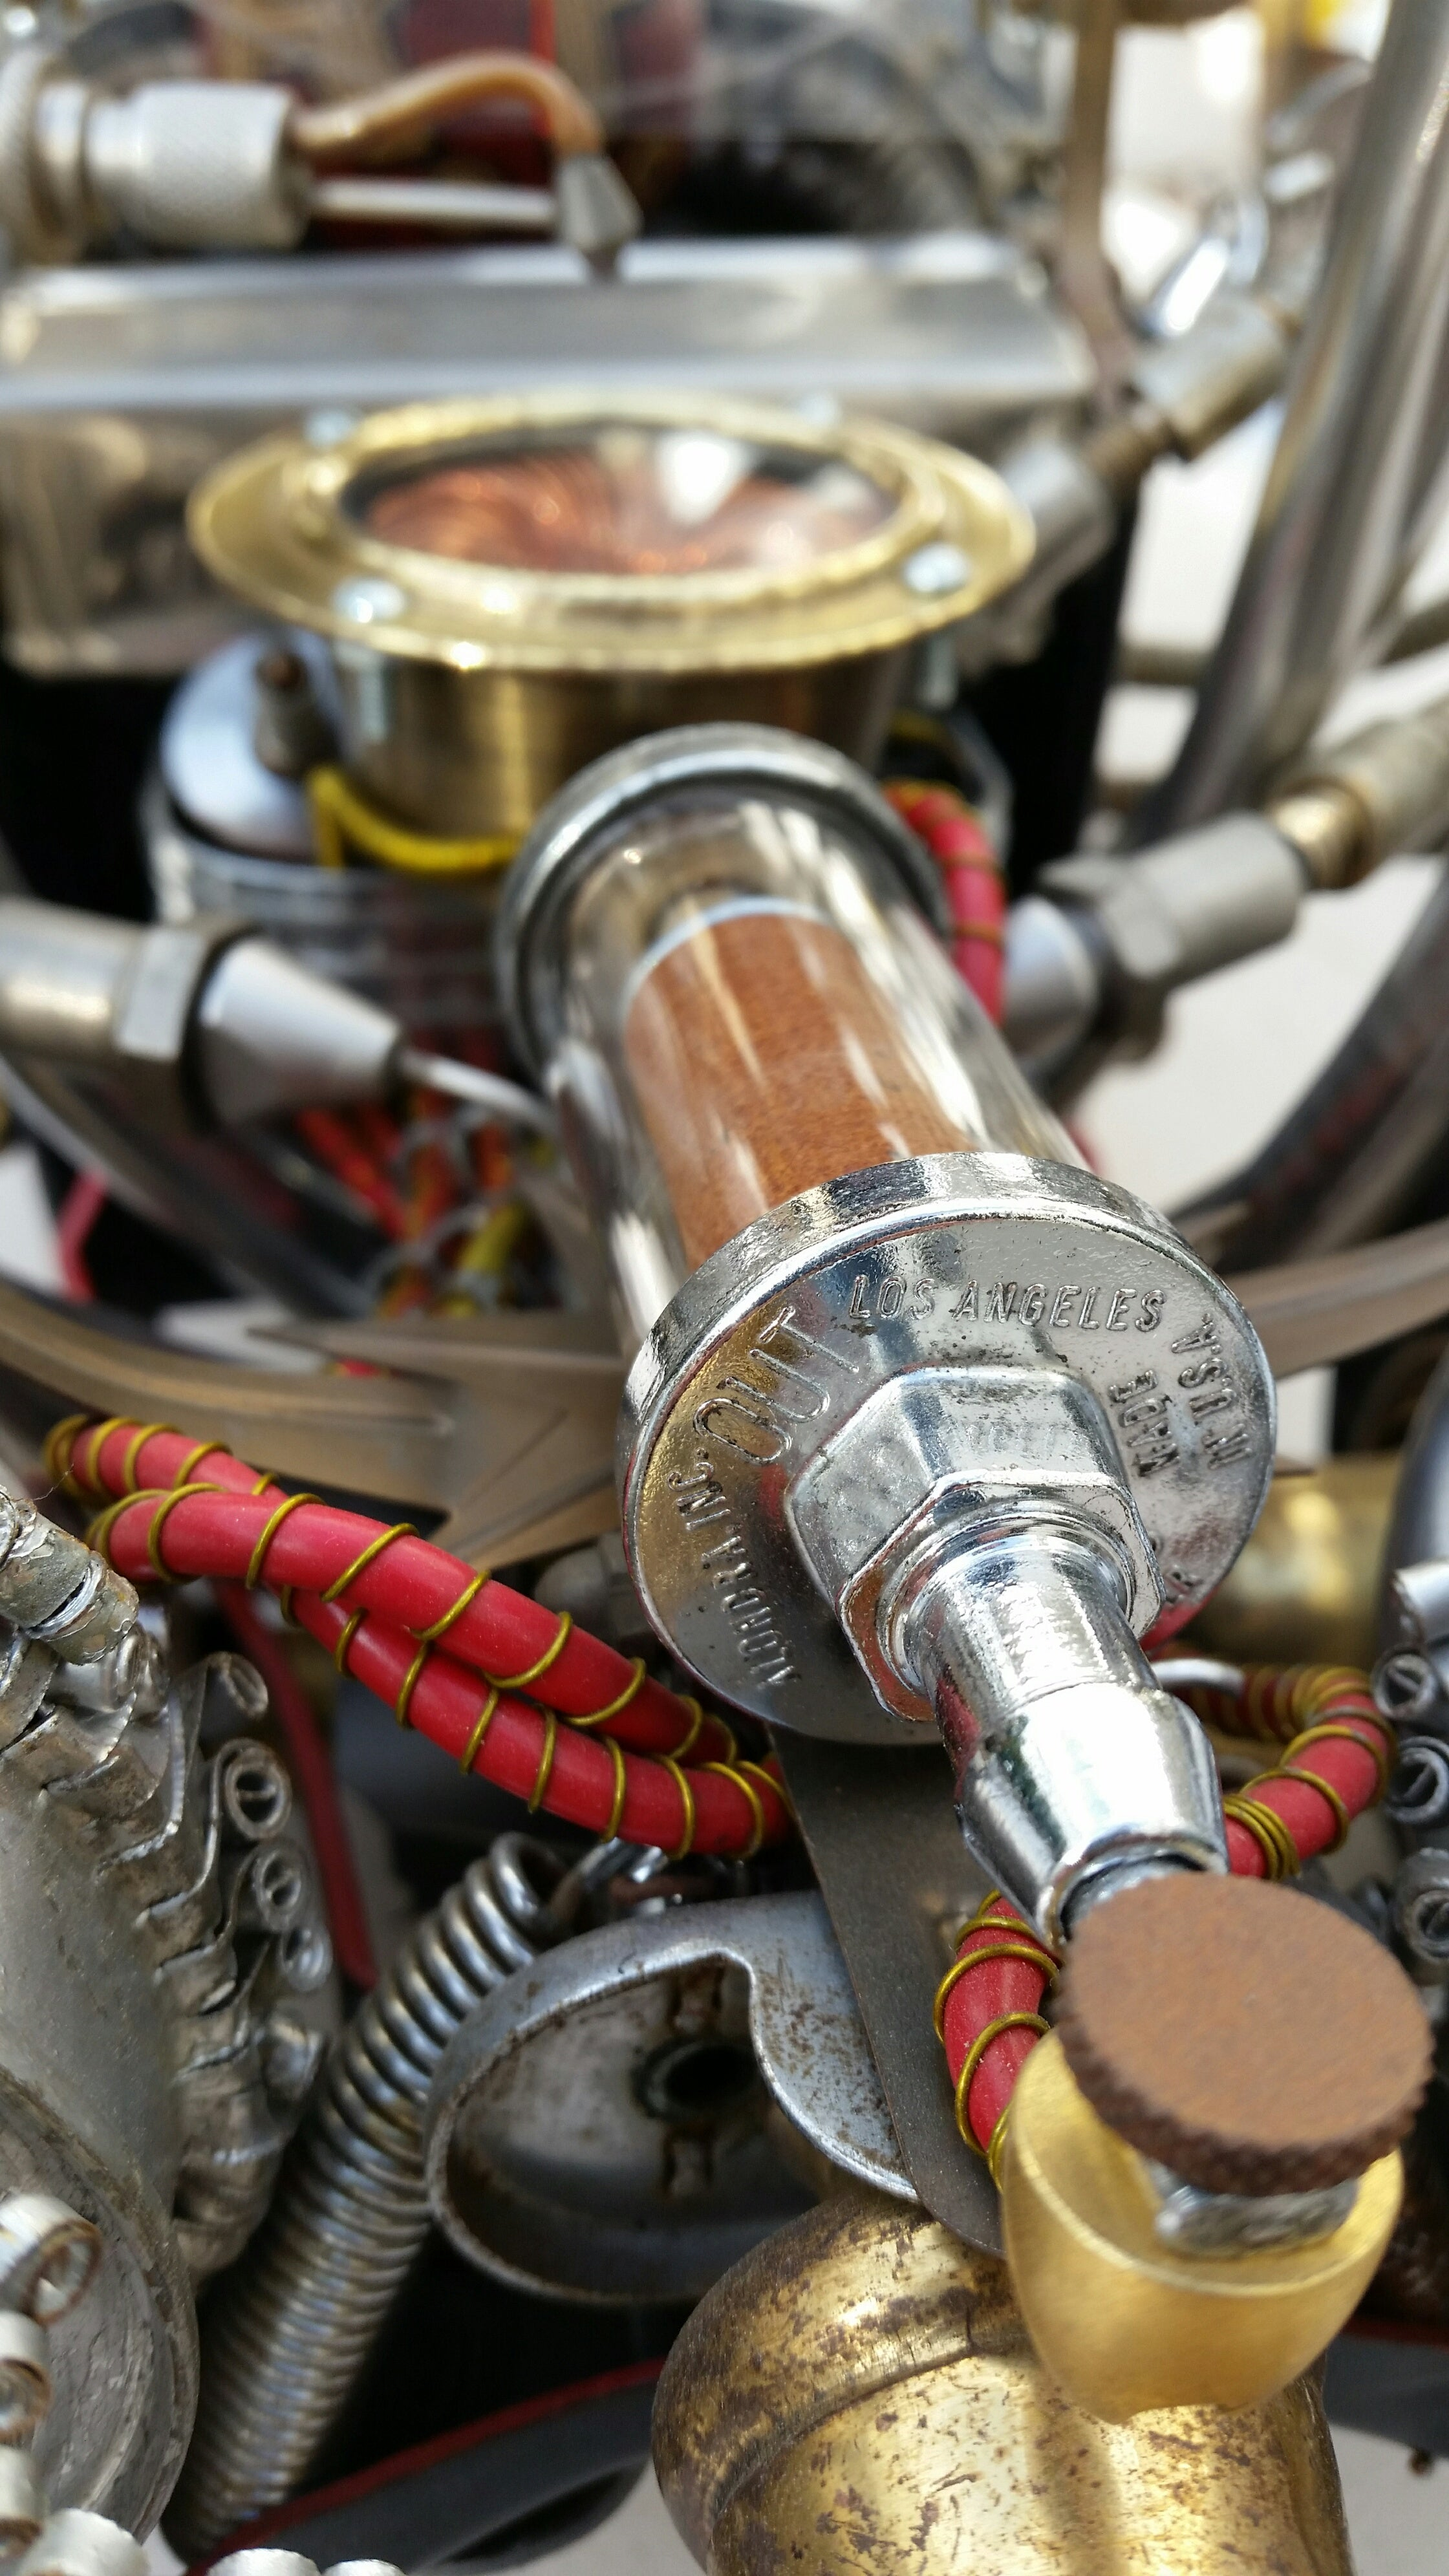 artist rick frausto's multimedia sculpture the hot rod engine detail 2